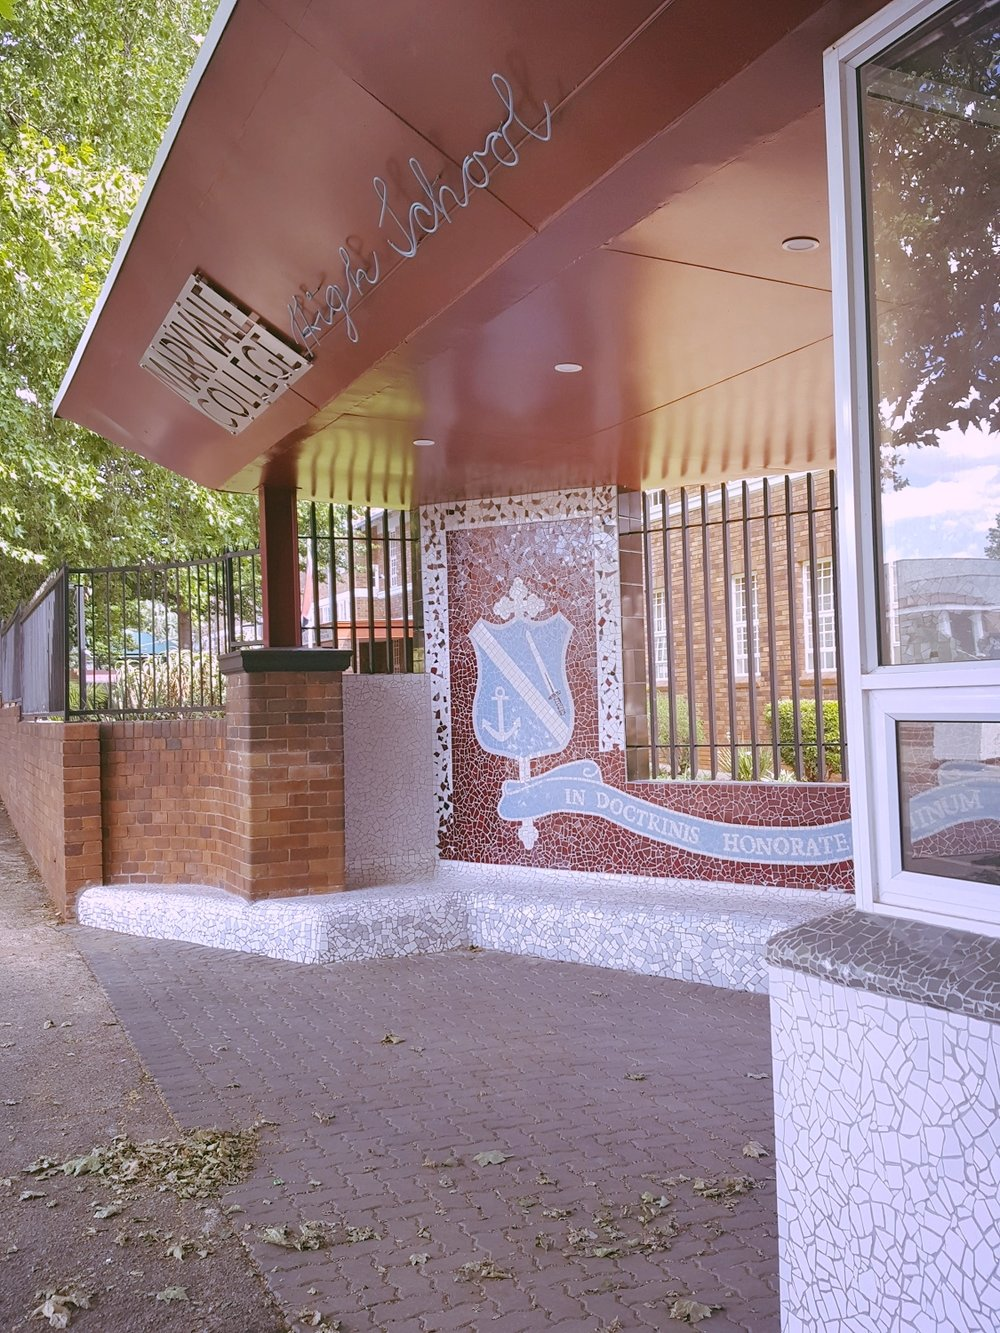 MARYVALE COLLEGE ENTRANCE